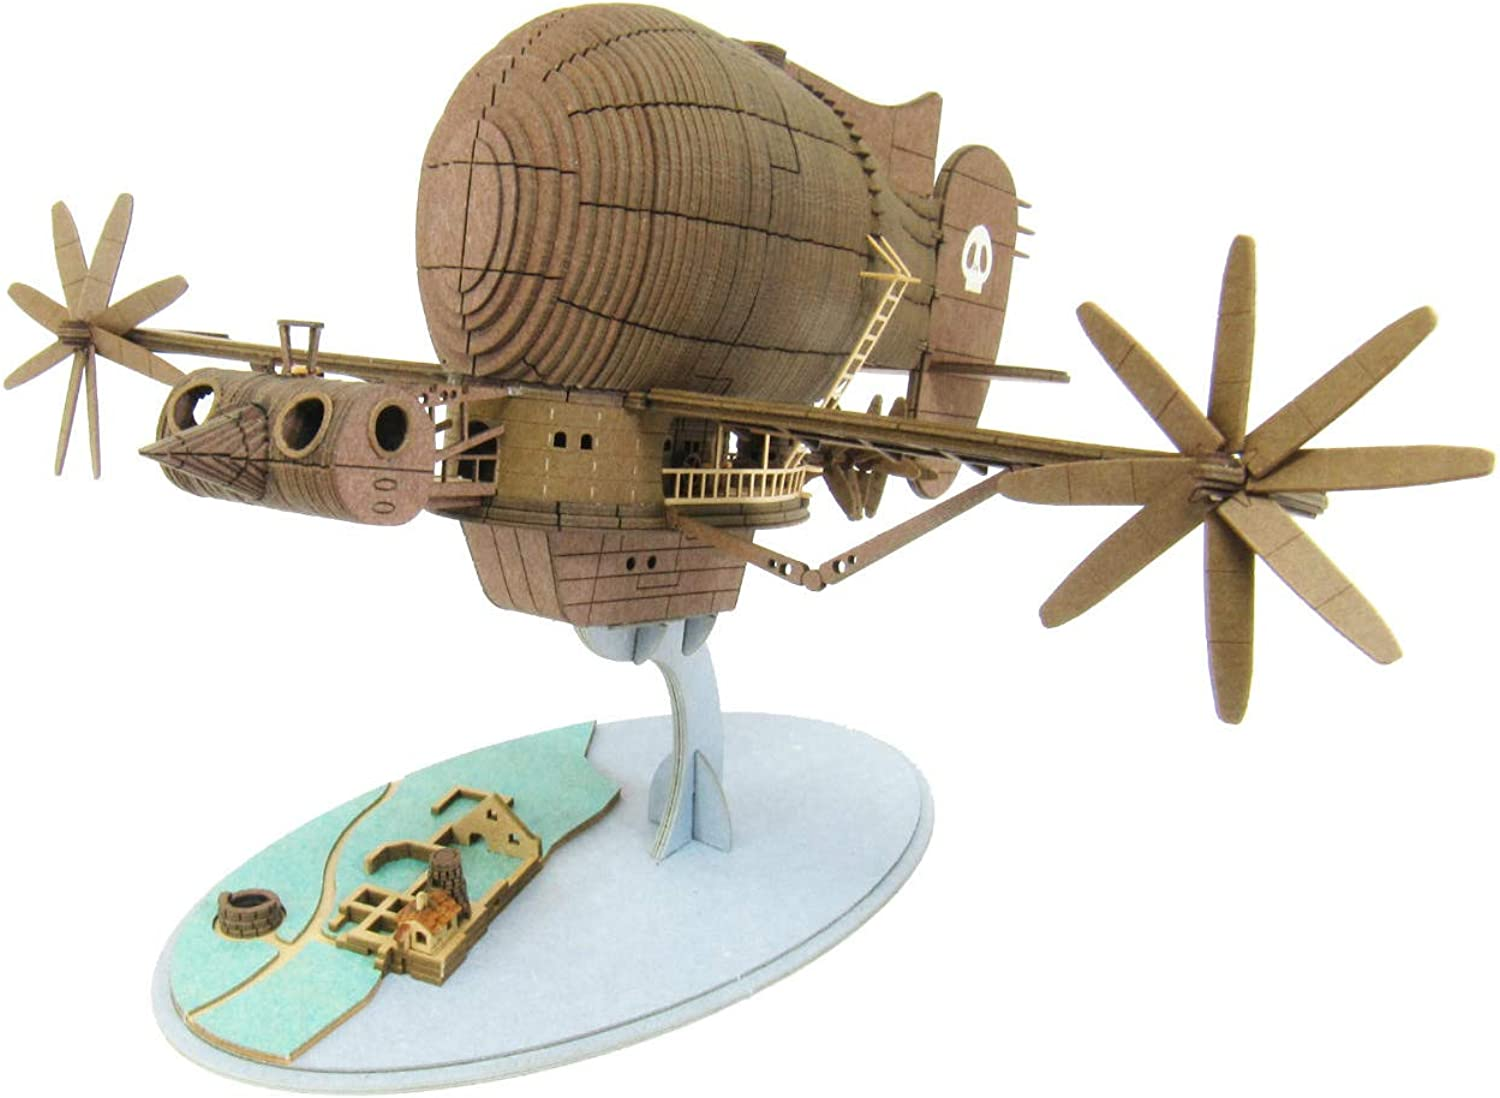 1 300 Studio Ghibli series Laputa  Castle in the Sky Tiger Moth MK0717 (Paper Craft)